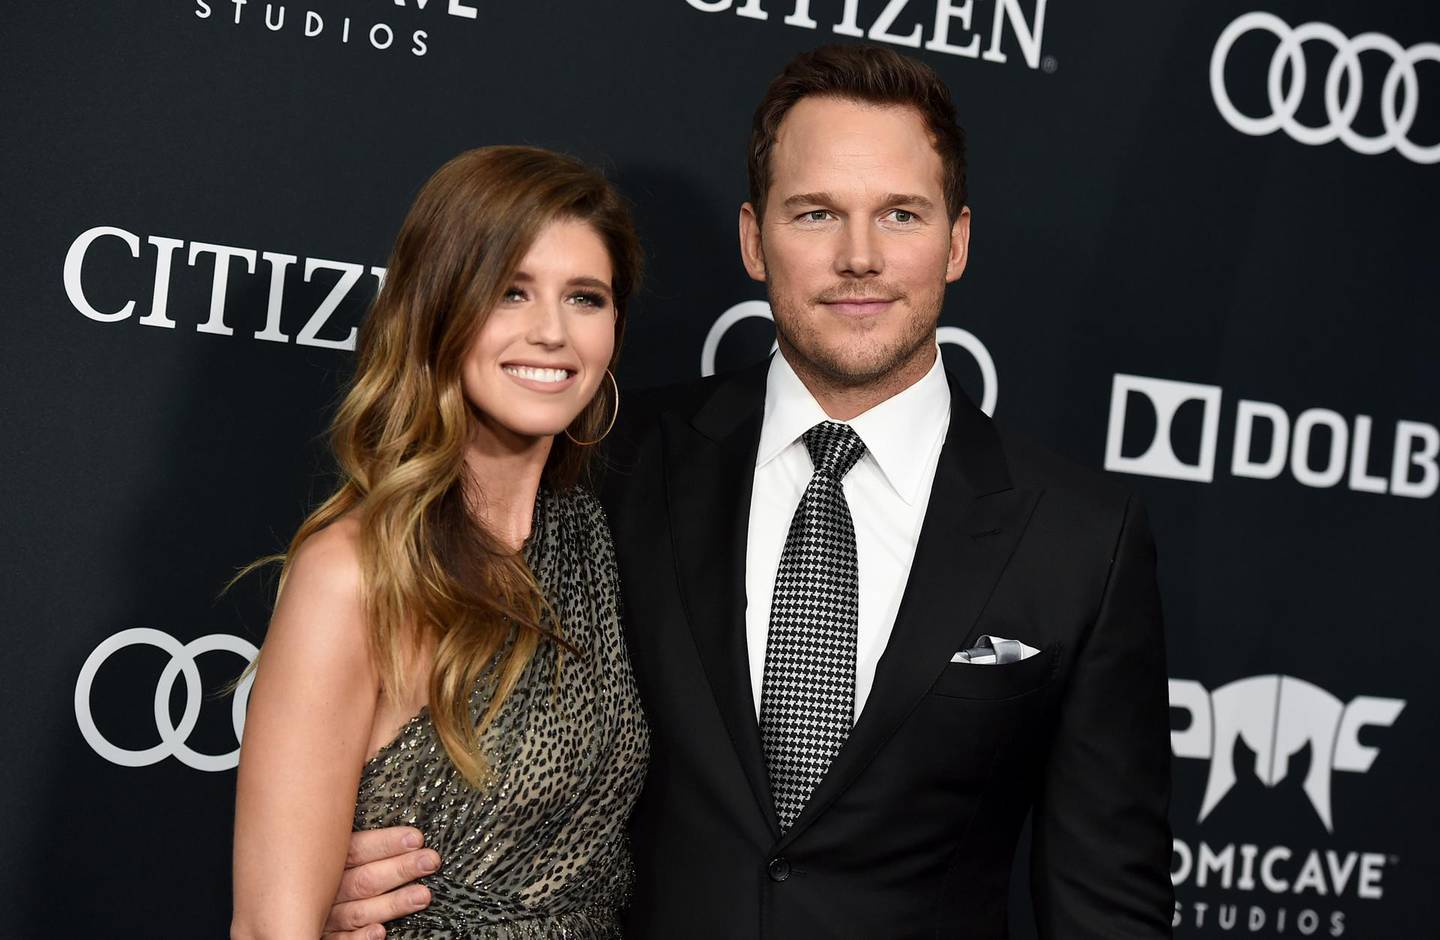 """FILE - Katherine Schwarzenegger, left, and Chris Pratt arrive at the premiere of """"Avengers: Endgame"""" in Los Angeles on April 22, 2019. Pratt and Schwarzenegger say they are """"beyond thrilled"""" and """"extremely blessed after she gave birth to their first child together. The """"Avengers"""" actor and the children's book author announced the birth of daughter Lyla Maria Schwarzenegger Pratt in a joint post on their Instagram accounts Monday. (Photo by Jordan Strauss/Invision/AP, File)"""